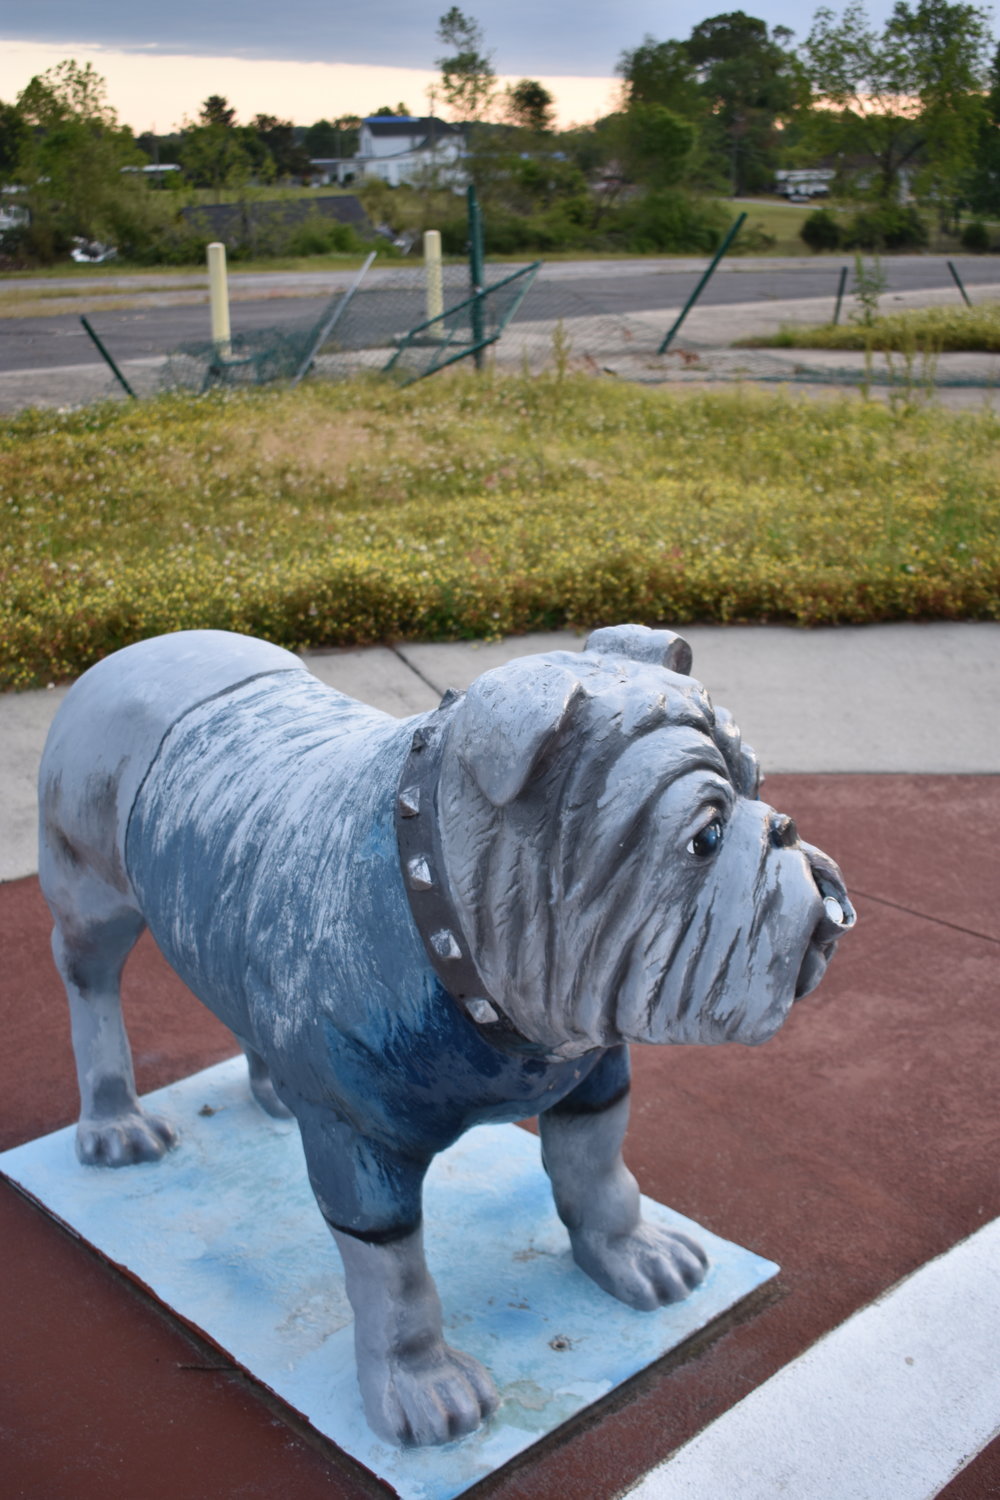 The Carbon Hill City Council indicated Monday that the splash pad was too damaged from the April 12 Easter tornado to be used this summer. The bulldog was said to almost be ripped completely off the pad.